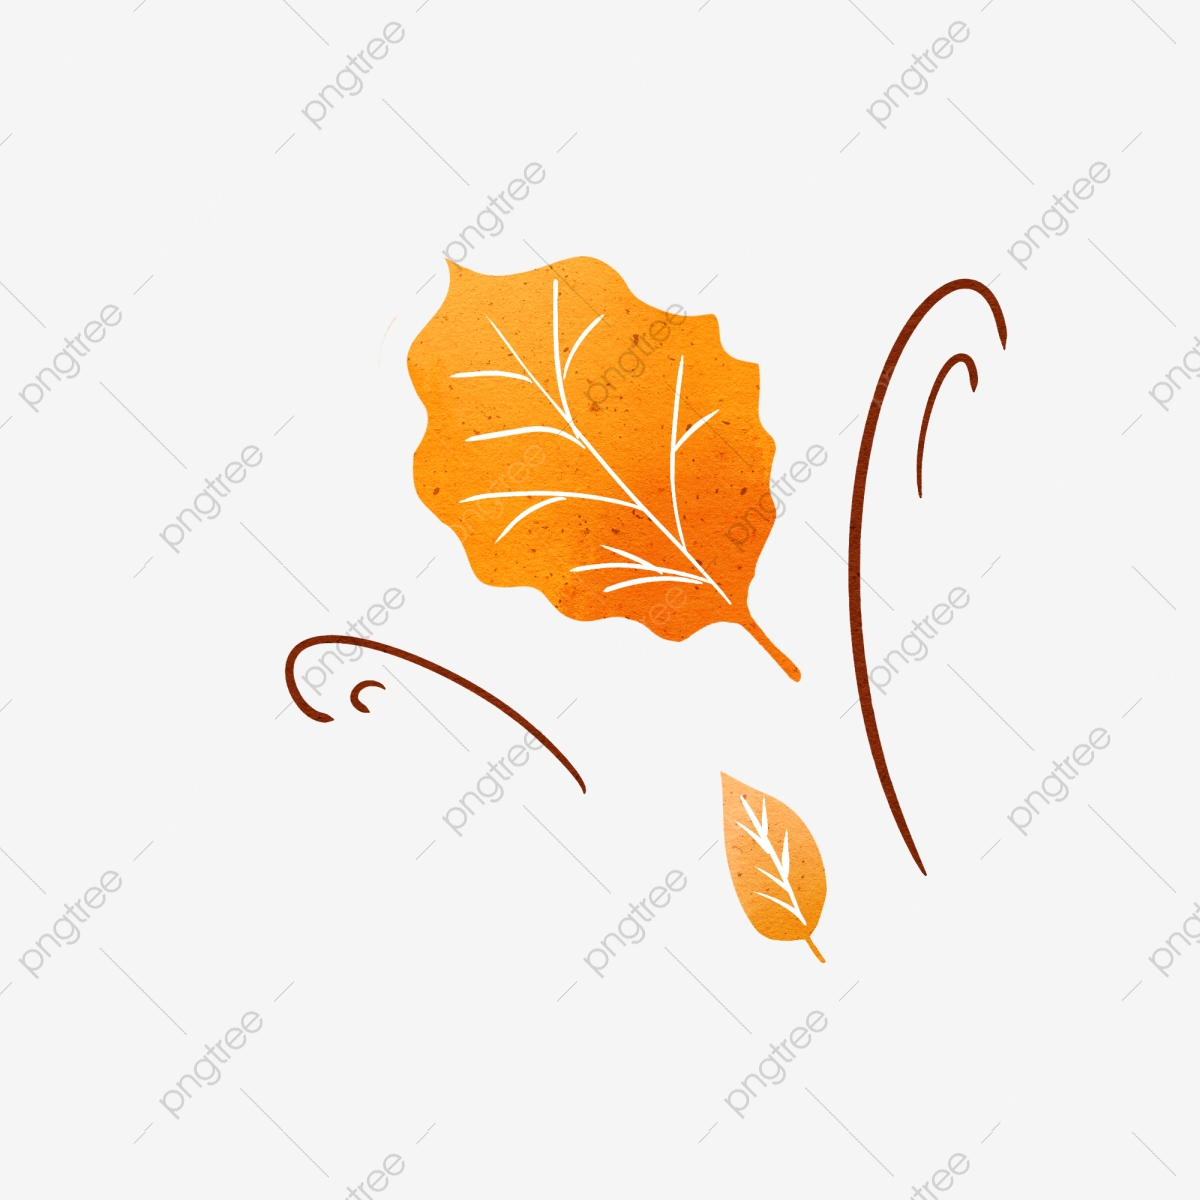 Autumn Wind Blowing Leaves Hand Drawn Elements Fall Wind Leaf Png Transparent Clipart Image And Psd File For Free Download